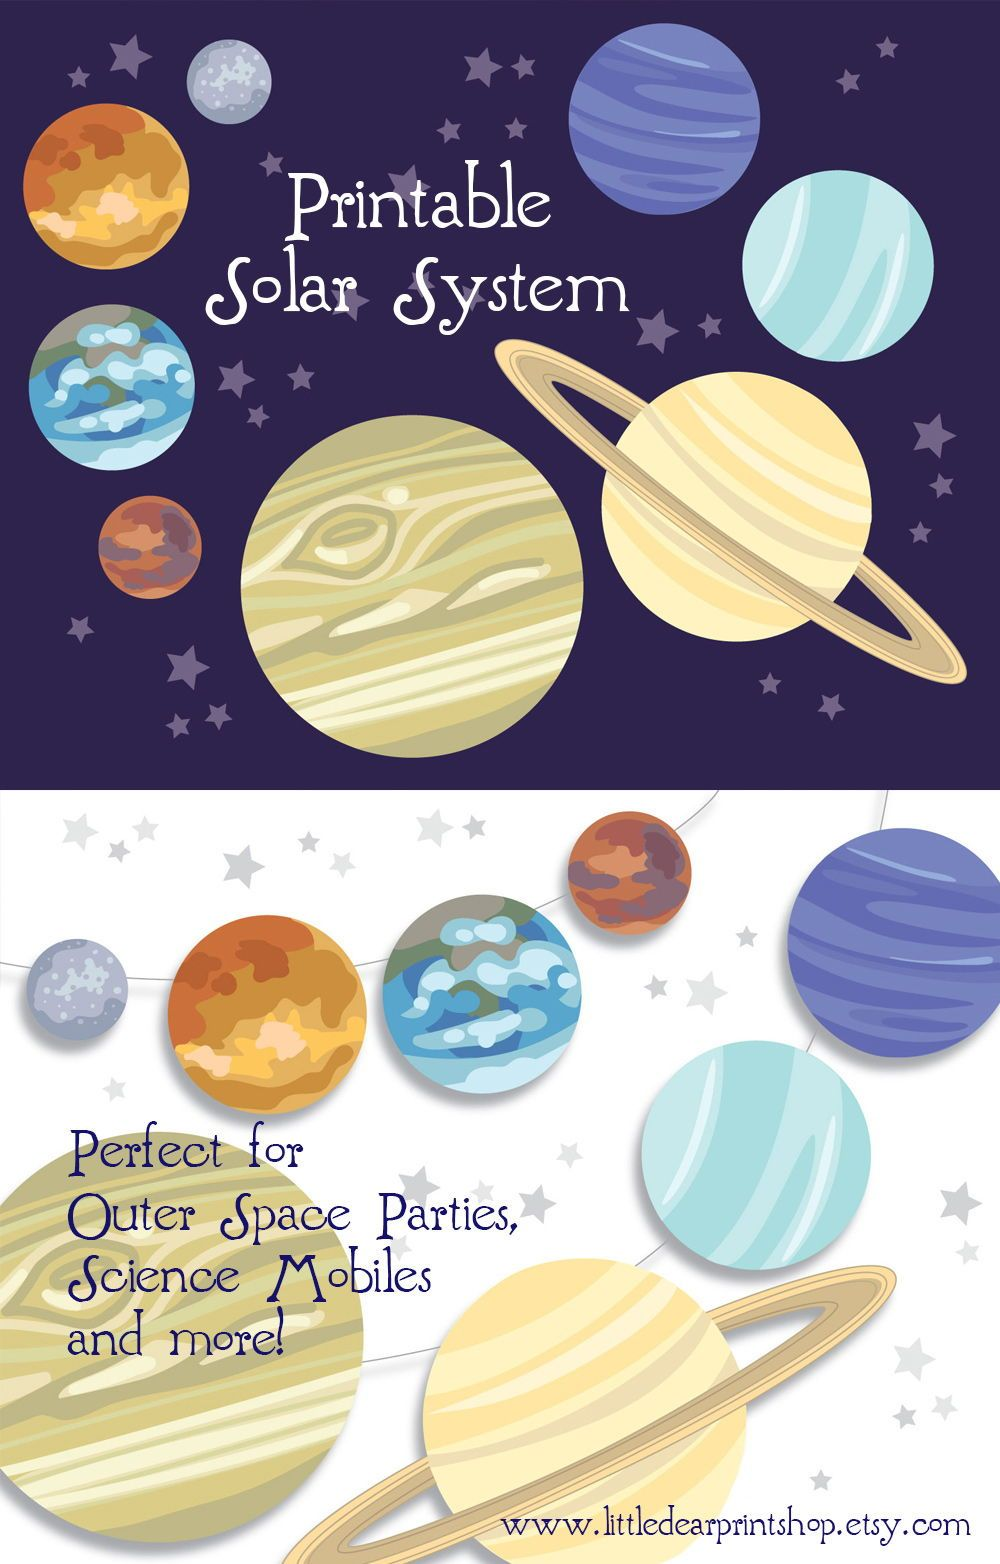 Printable Planets Grab This Pdf Printable Solar System For All